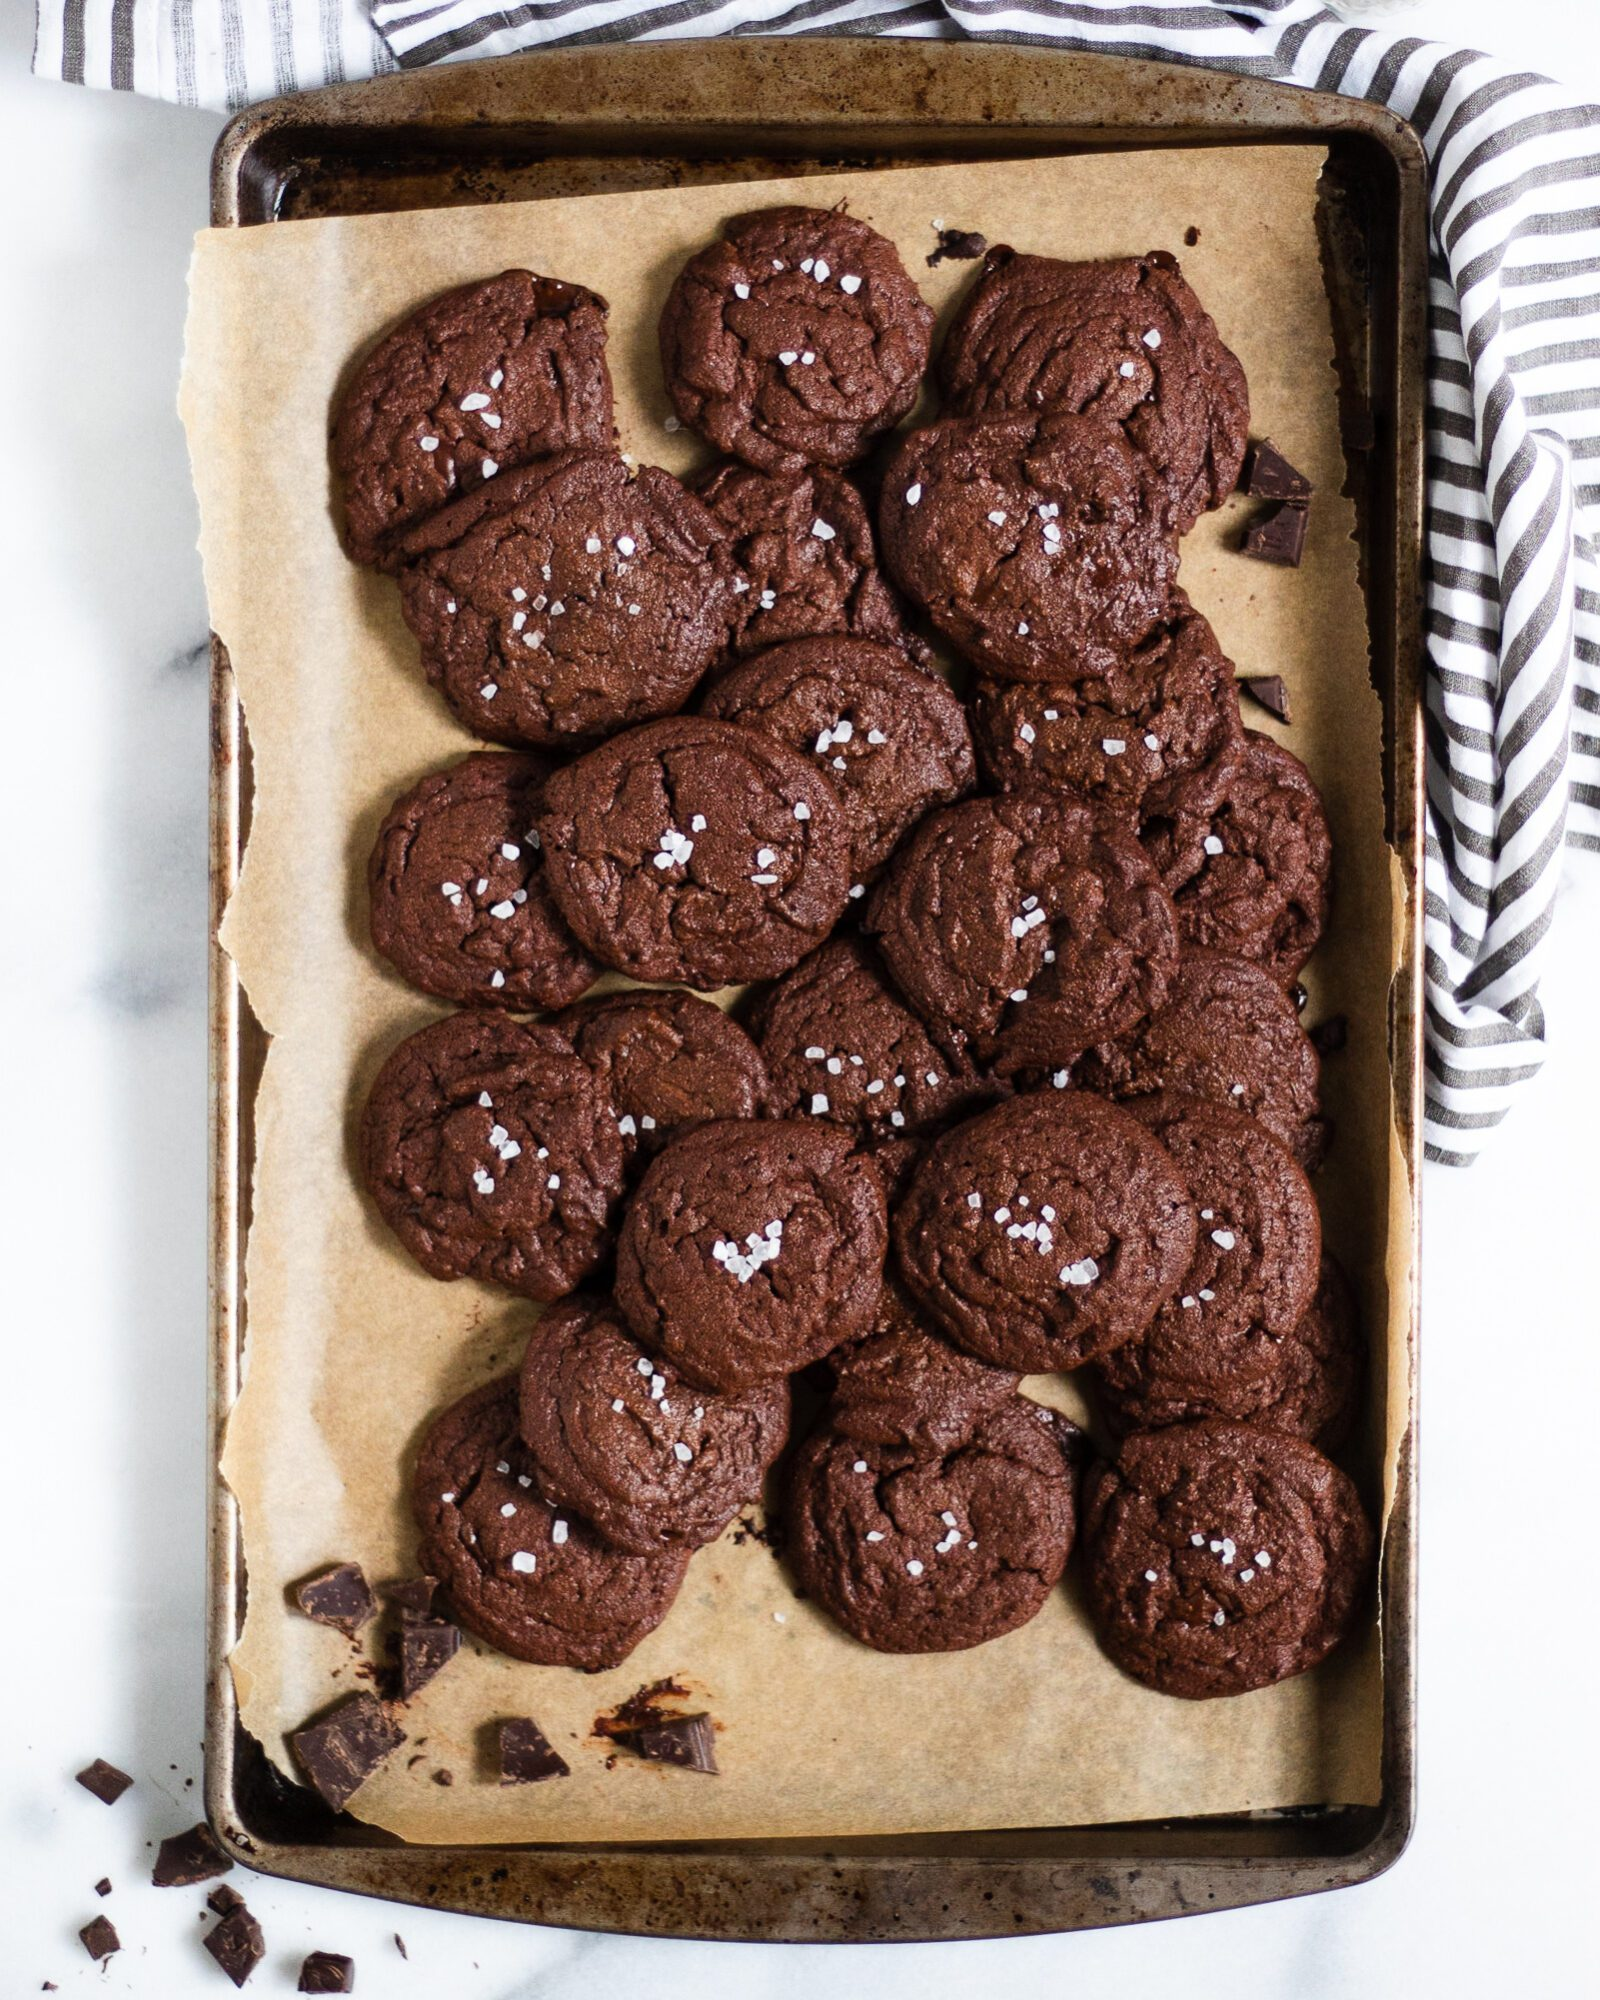 baking sheet full of chocolate cookies with a sprinkle of sea salt